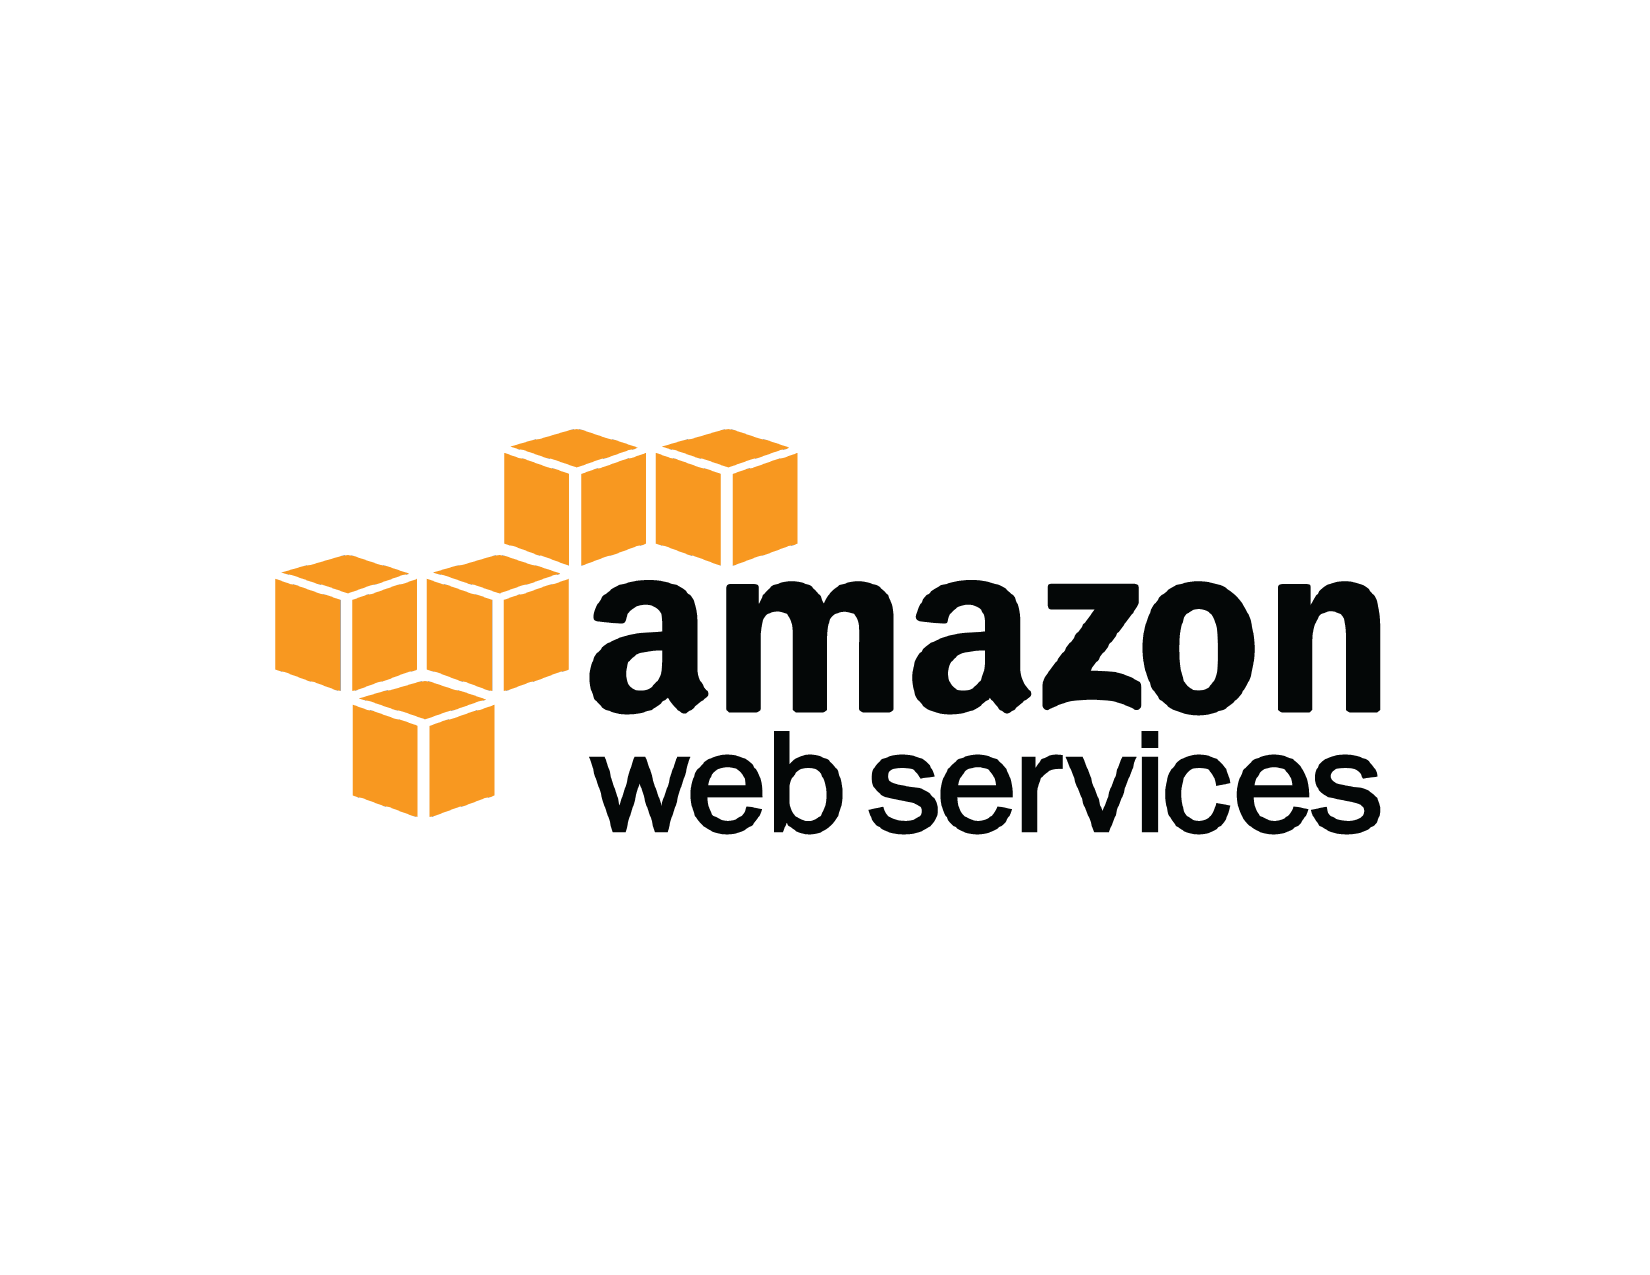 AWS VS ALIBABA CLOUD SERVICES IN 2021